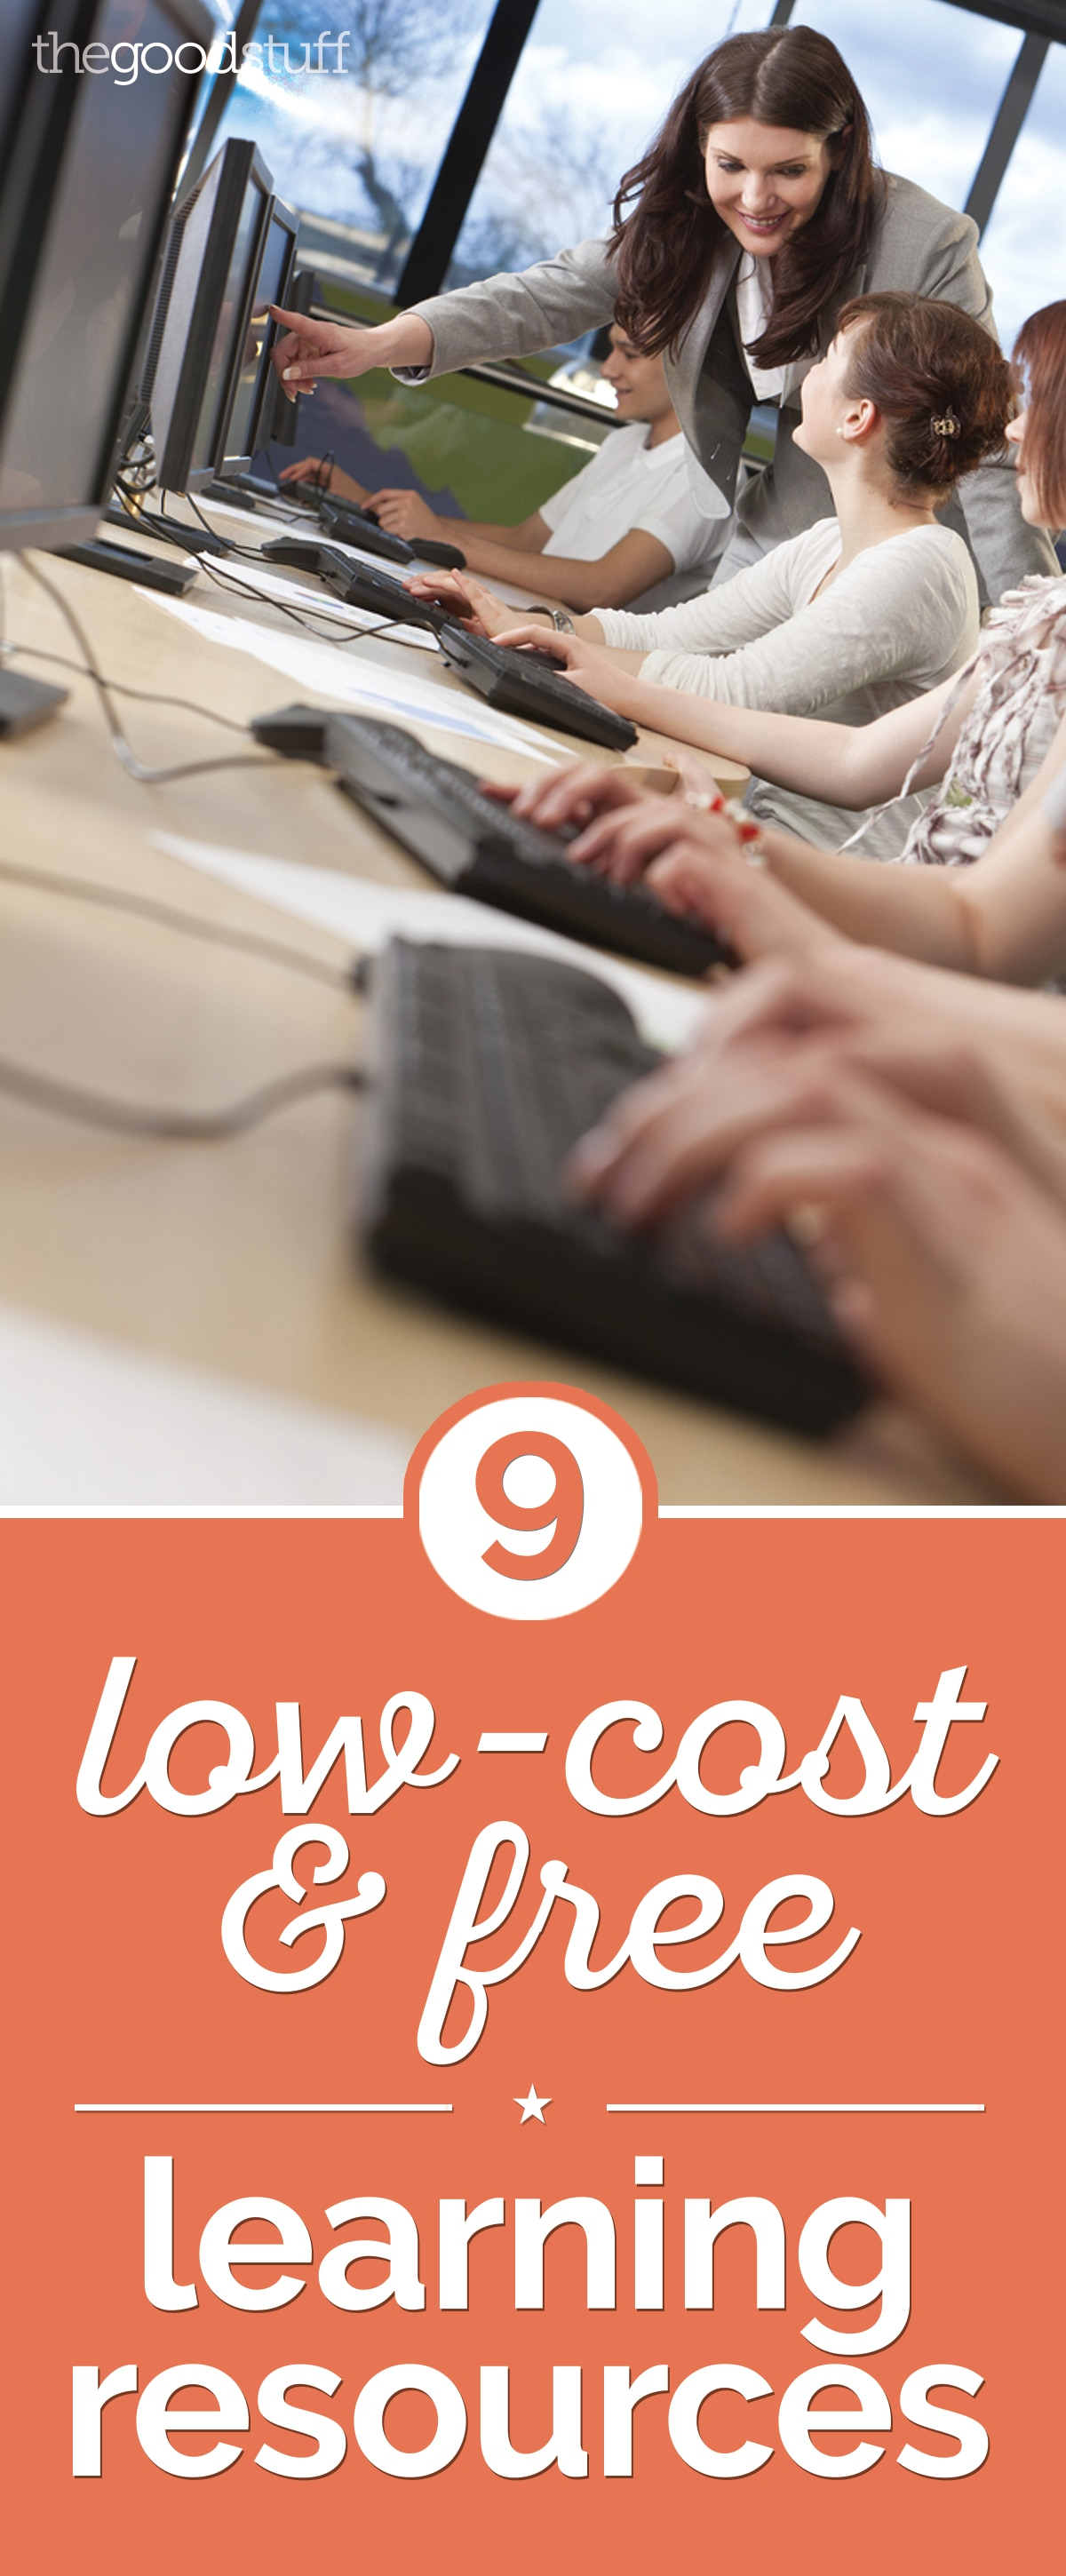 9 Low-Cost & Free Learning Resources | thegoodstuff